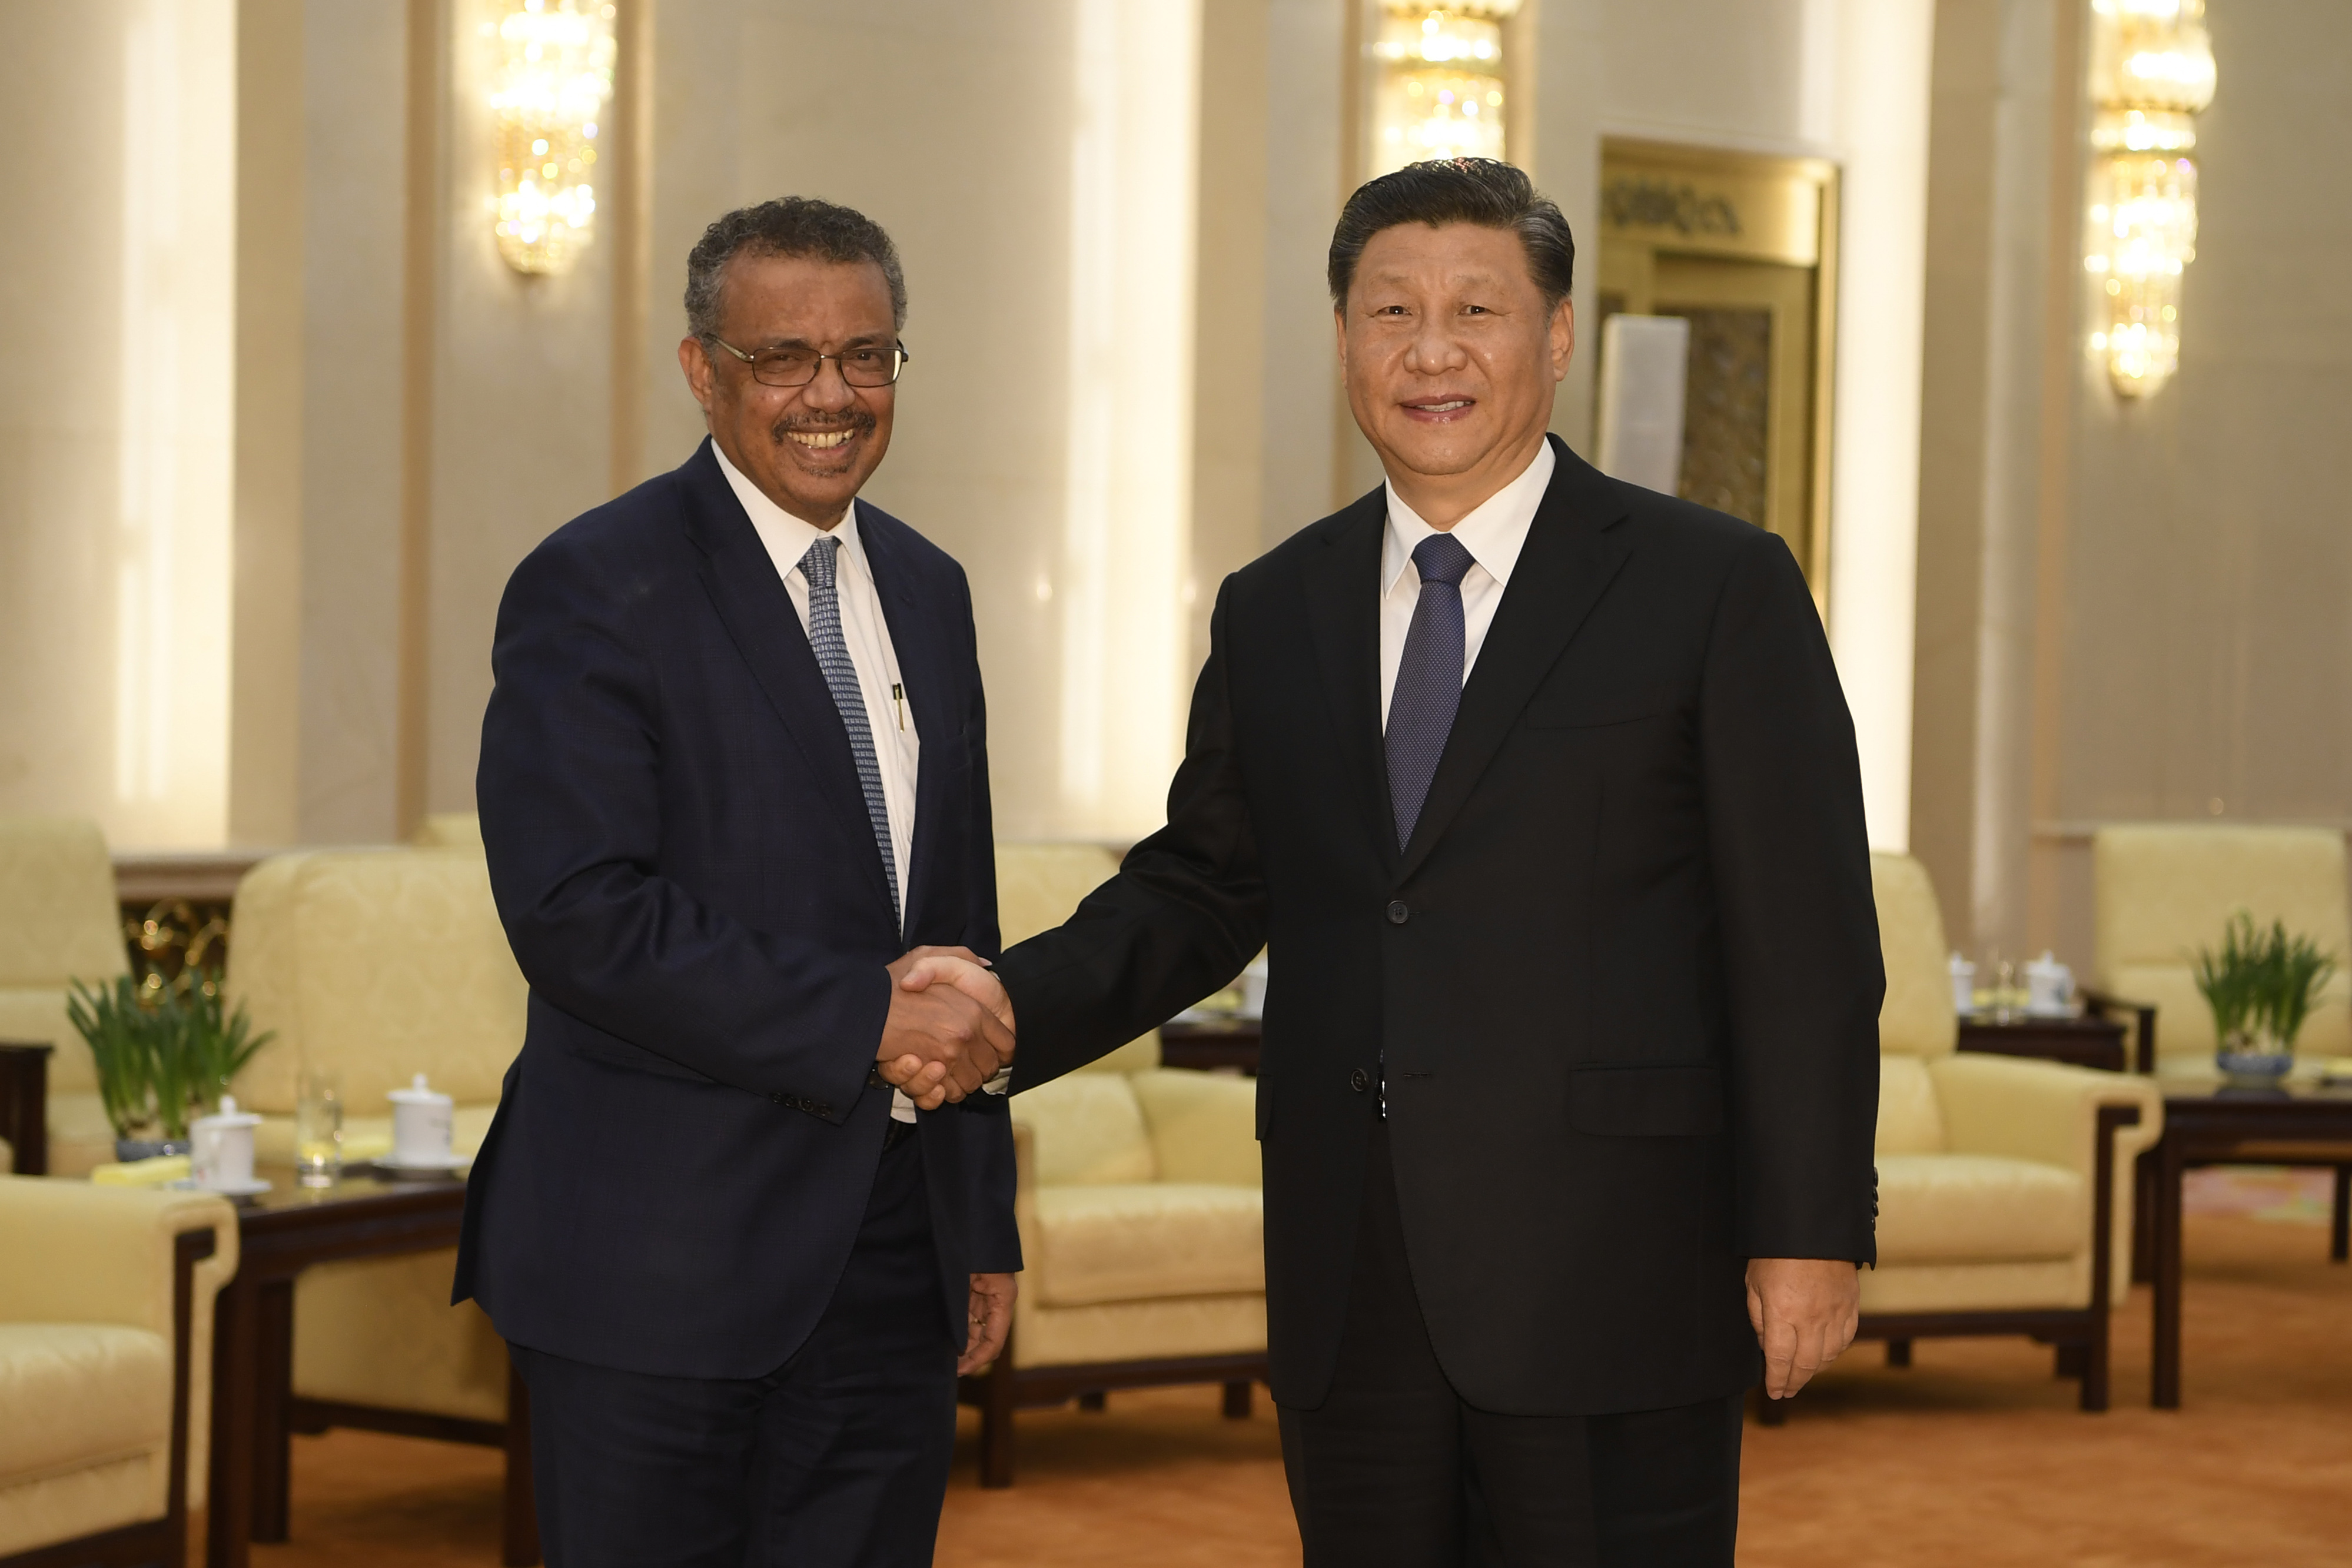 Tedros Adhanom, Director General of the World Health Organization, (L) shakes hands with Chinese President Xi Jinping. (Photo by Naohiko Hatta - Pool/Getty Images)